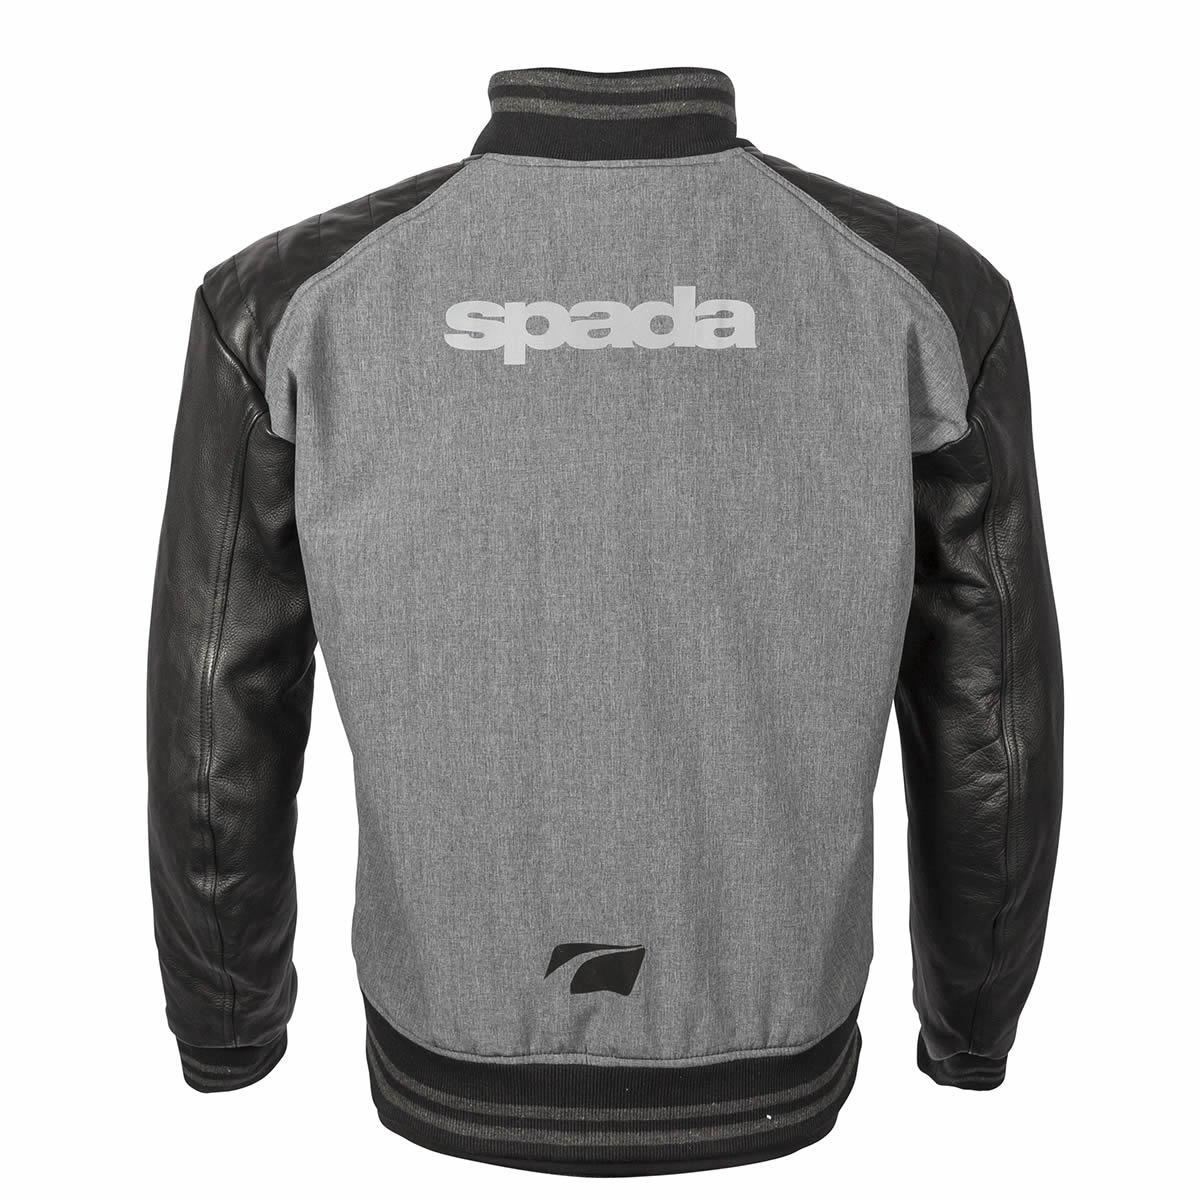 Spada-Campus-Yale-Men-039-s-Motorcycle-Jacket-Grey-Leather-Textile-CE-Armour-Summer miniature 15